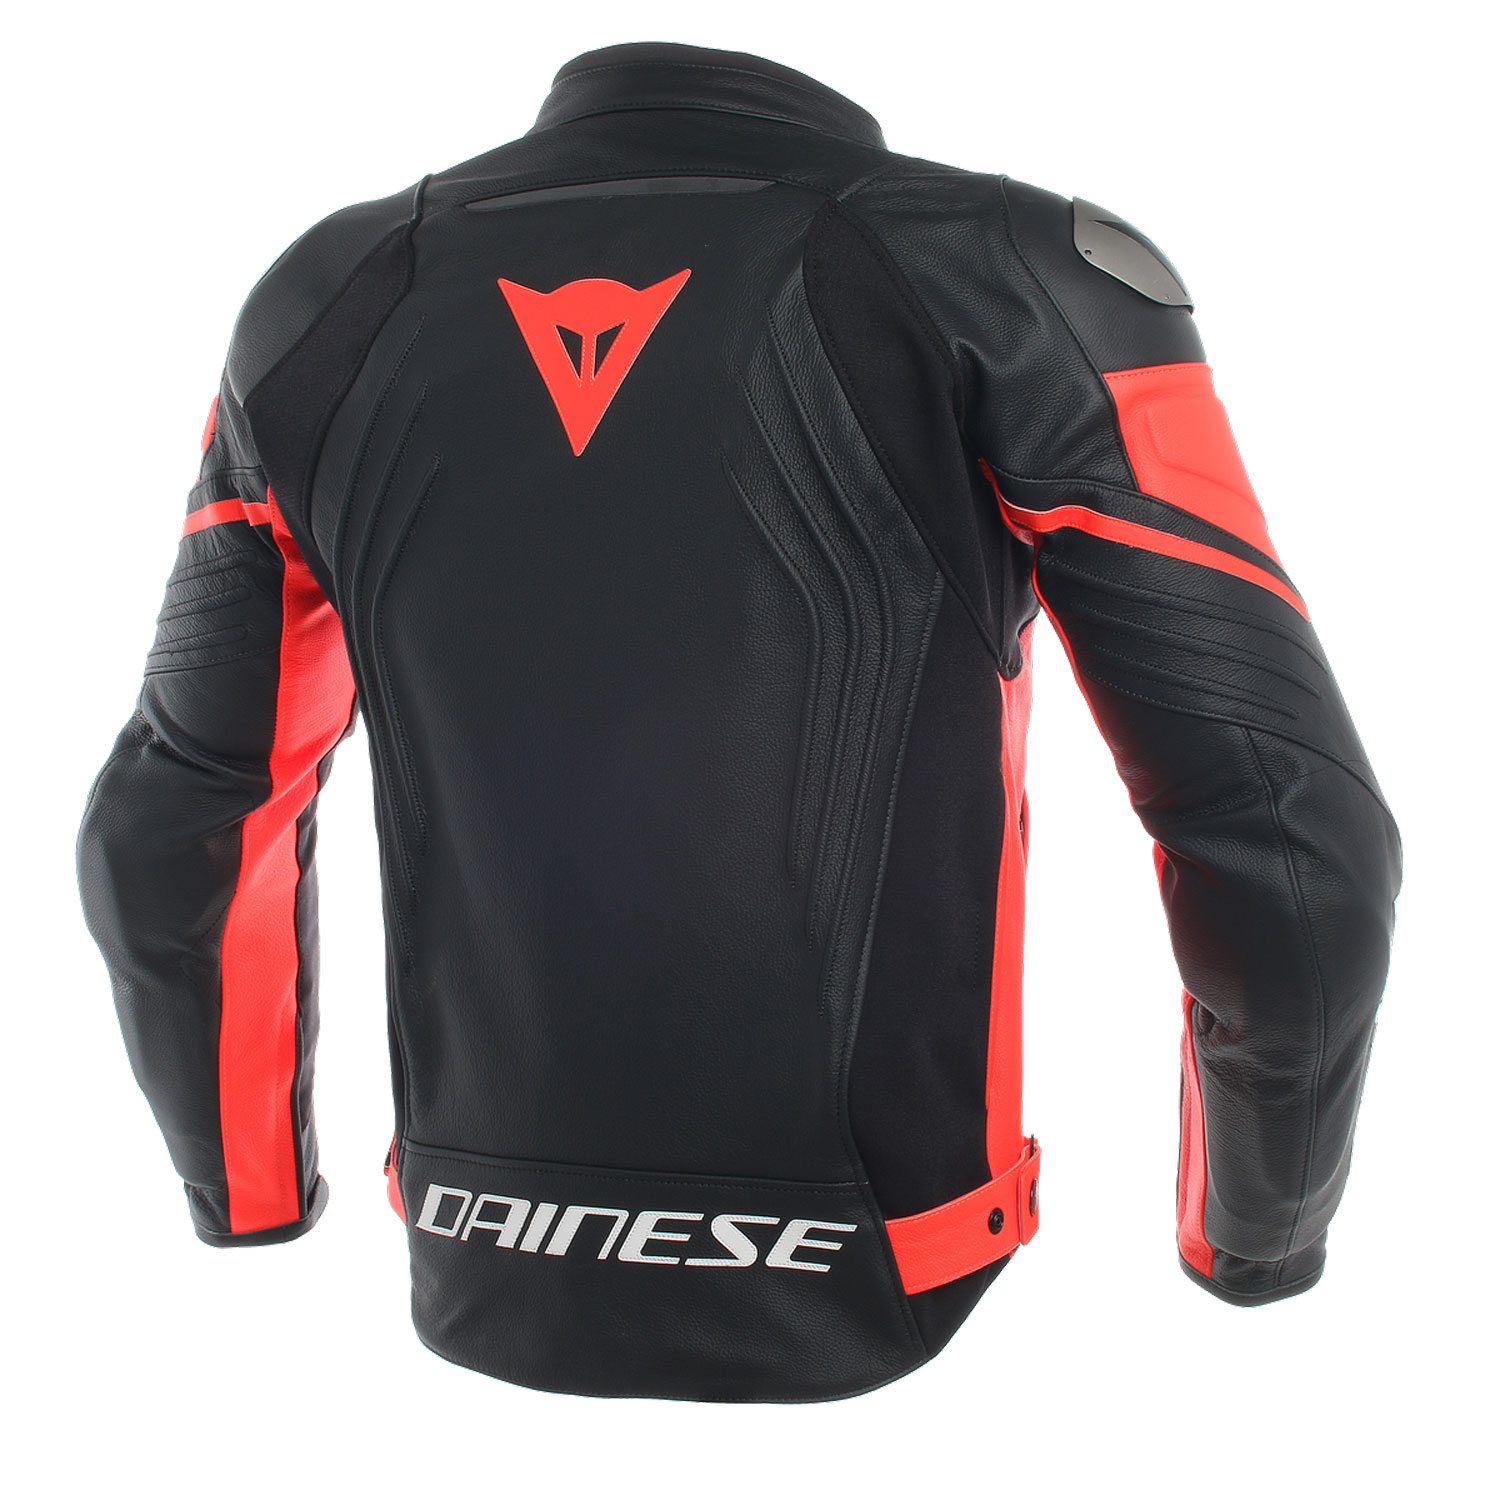 dainese racing 3 lederjacke schwarz fluorot gr e 52. Black Bedroom Furniture Sets. Home Design Ideas